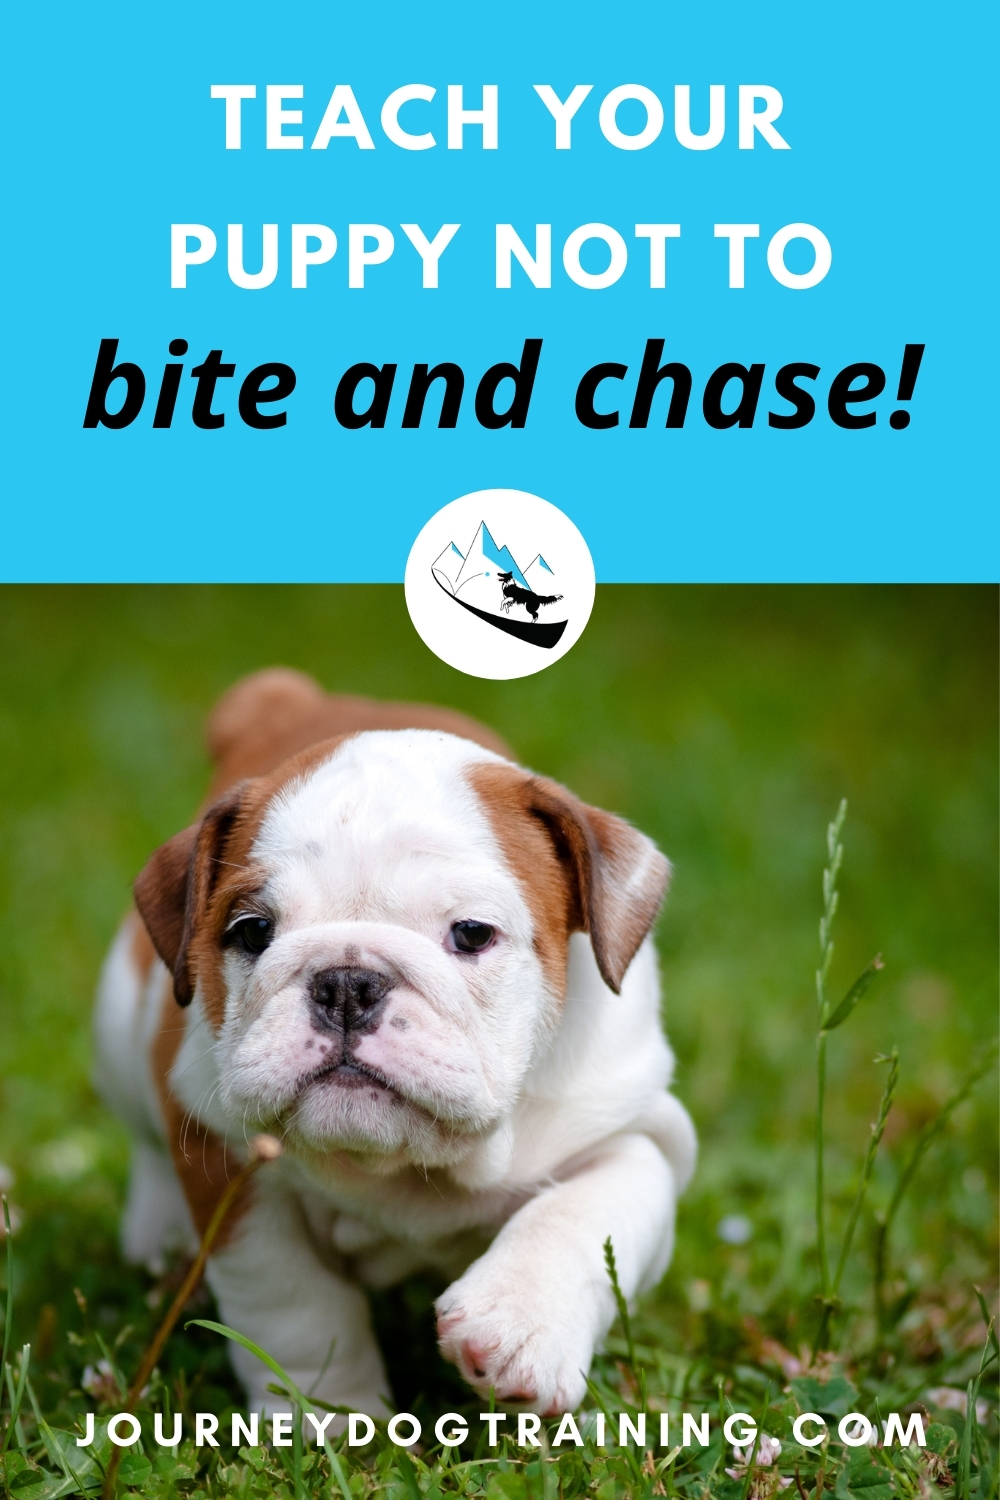 teach your puppy not to bite and chase | journeydogtraining.com